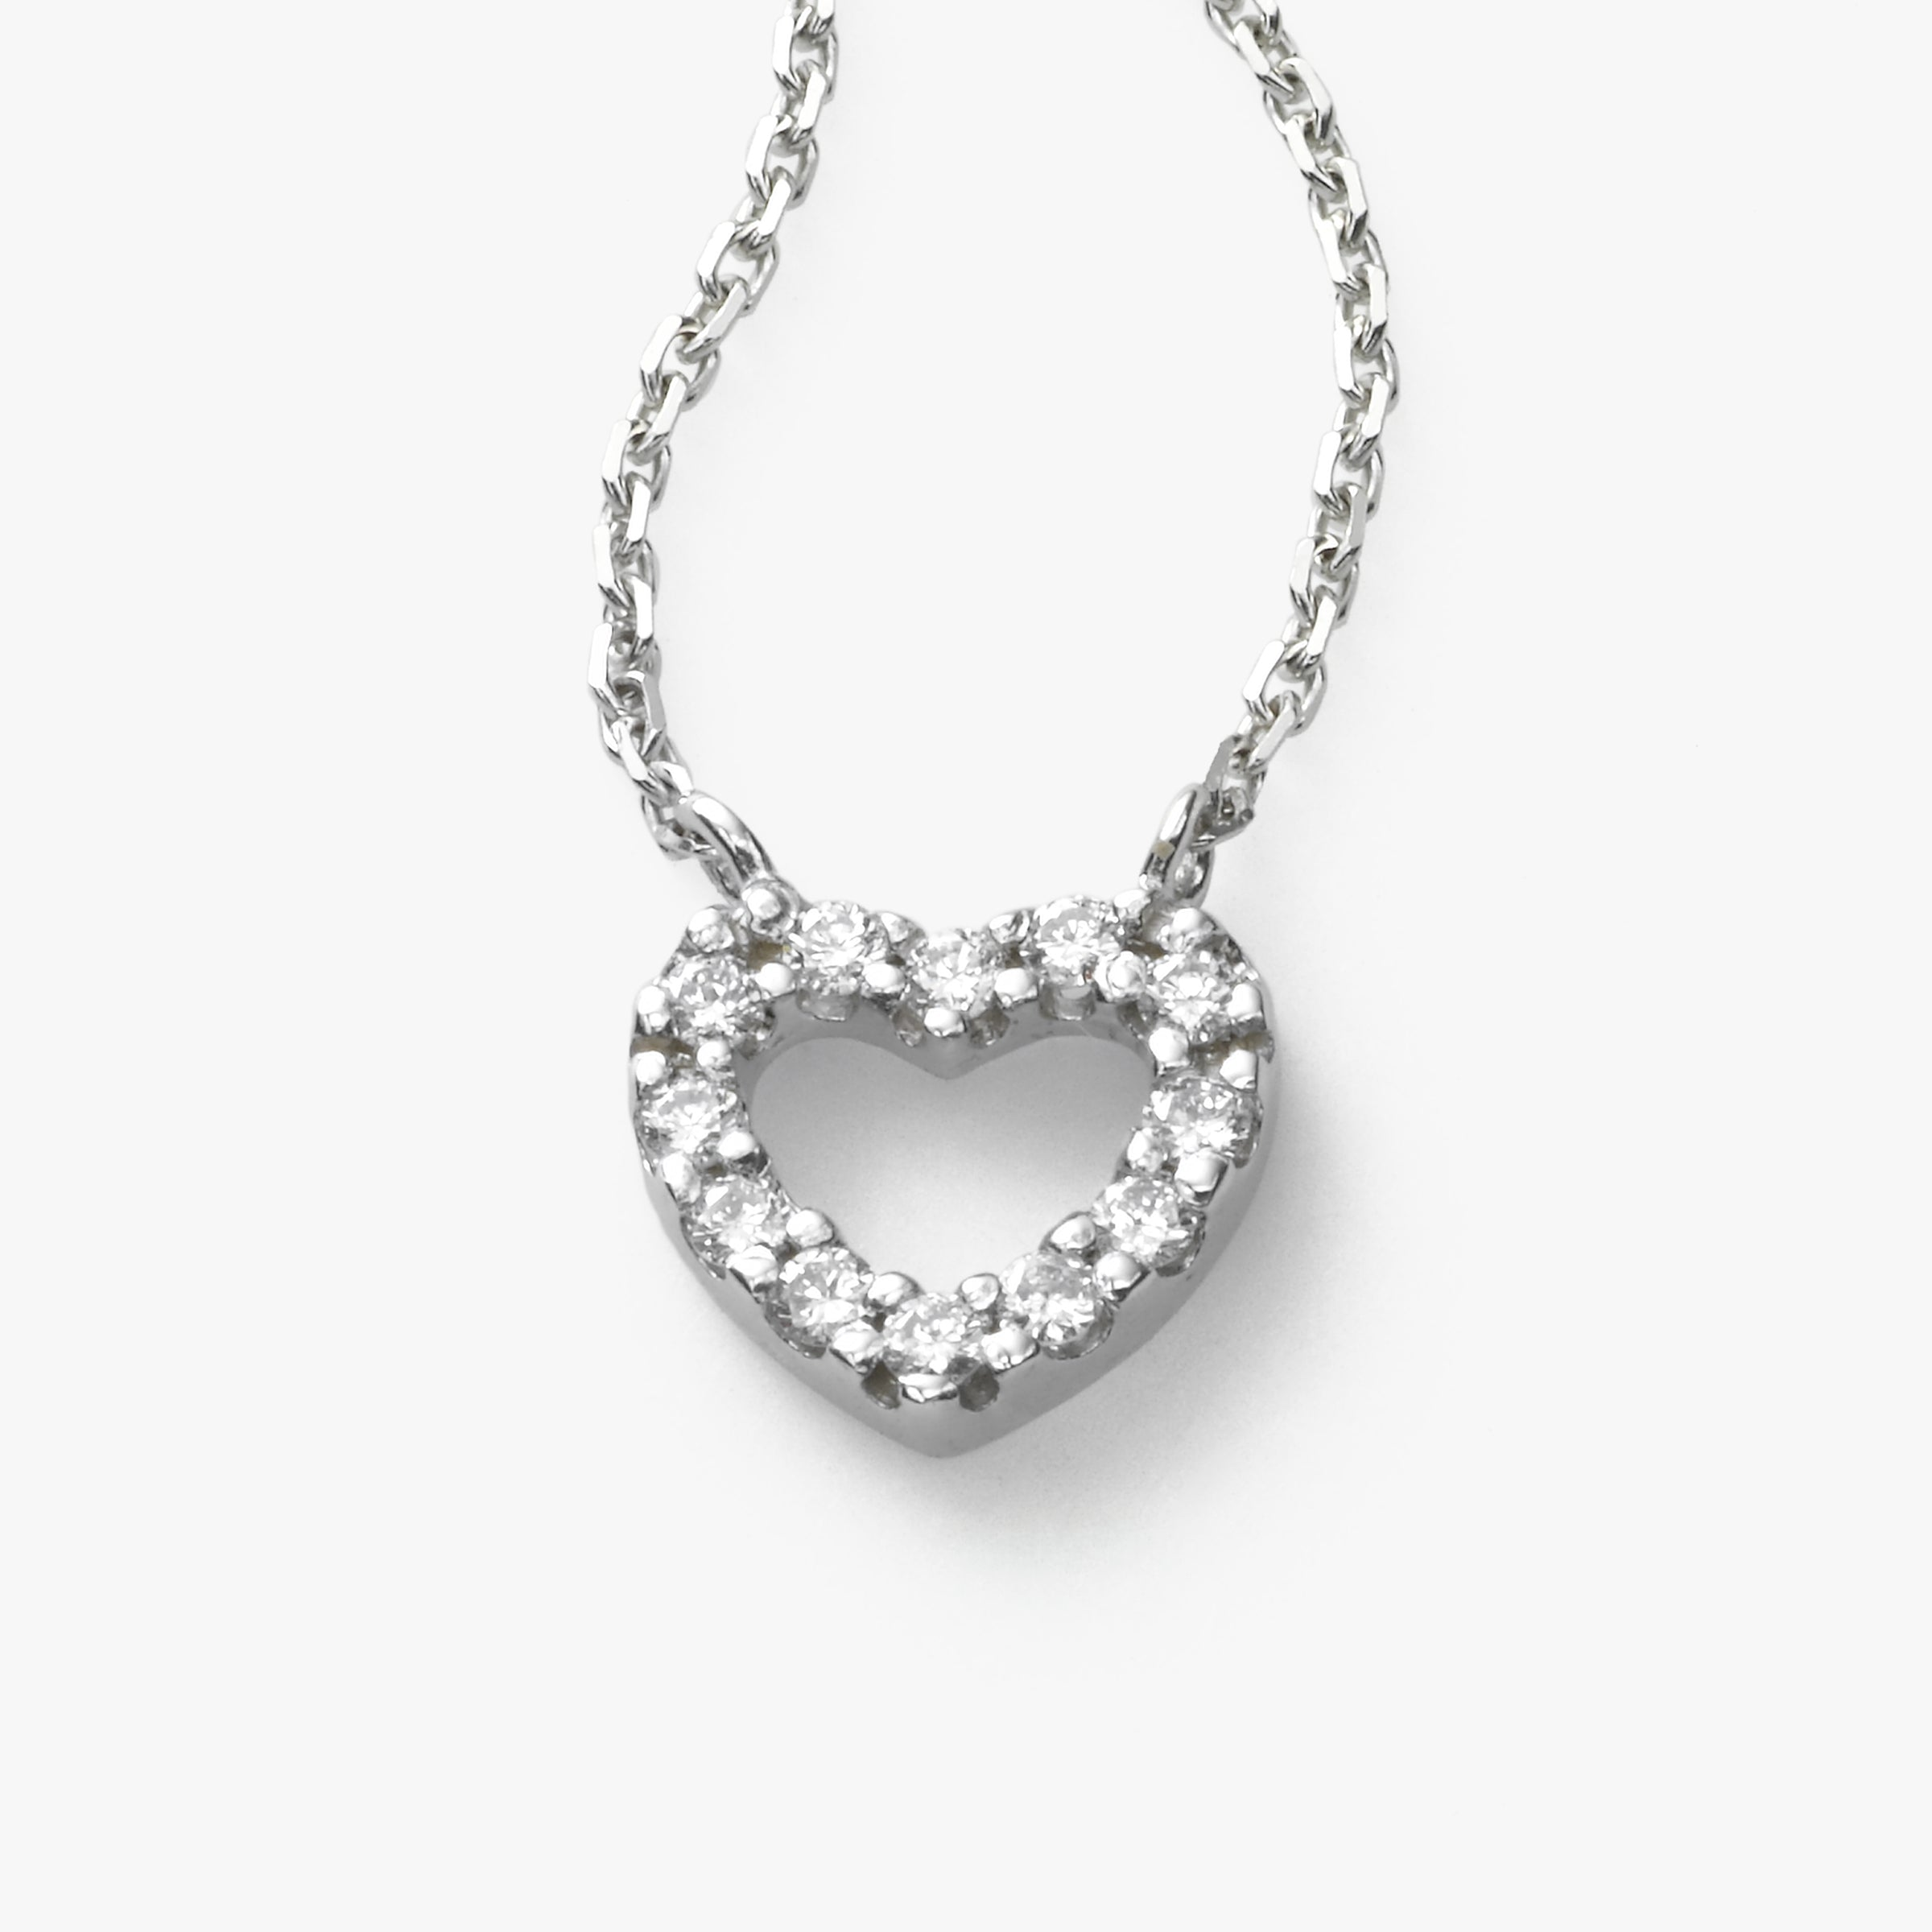 Kid's Small Diamond Heart Necklace, 14K White Gold